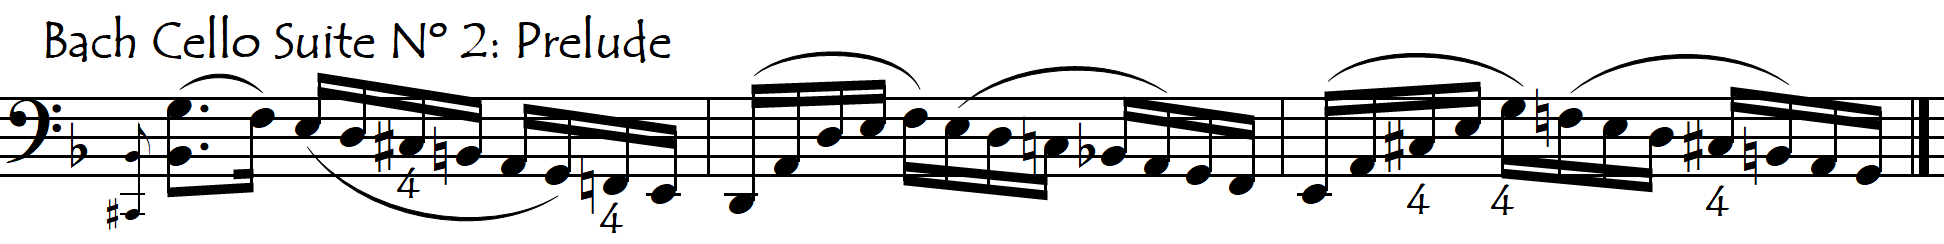 bach II extd up with thumb back